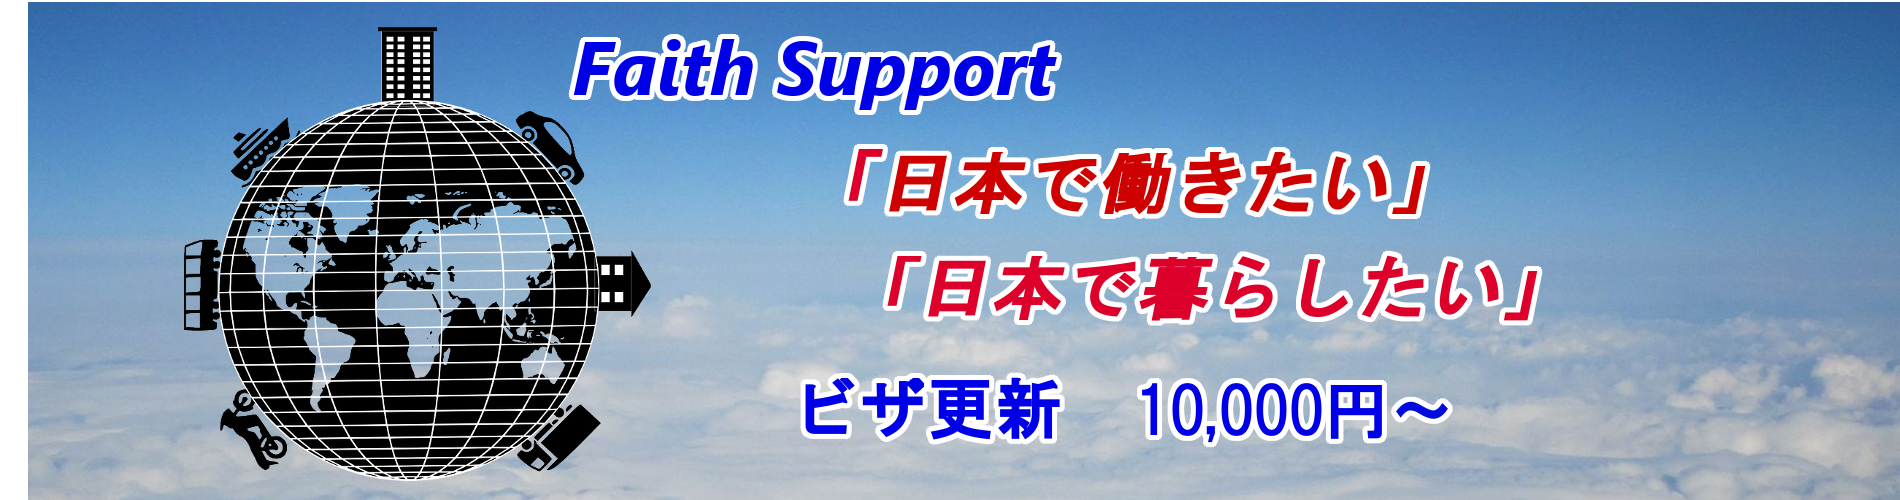 Faith Support